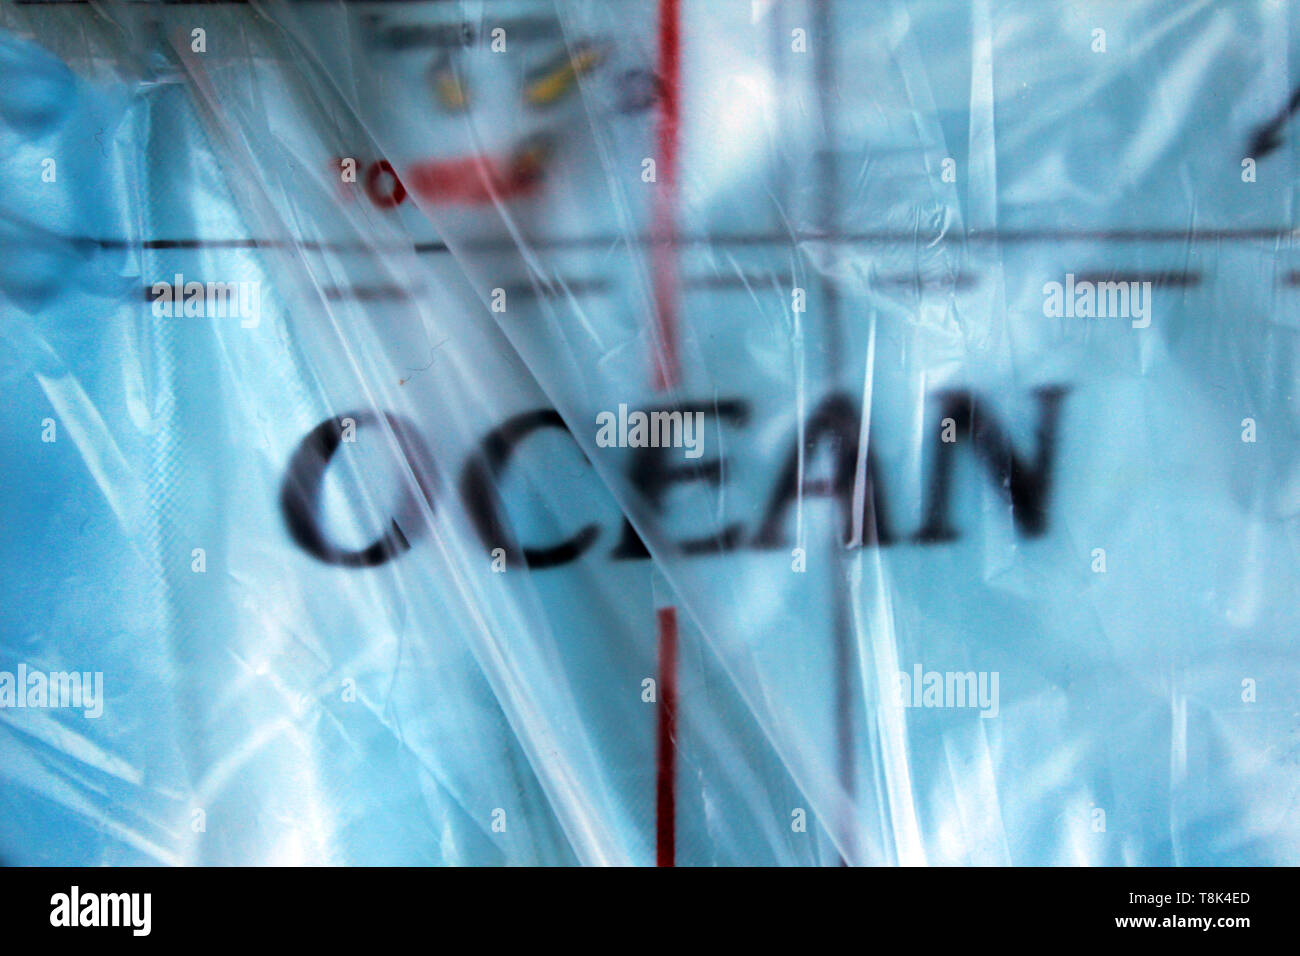 Ocean word, printed inside a plastic bag, concept, close-up - Stock Image